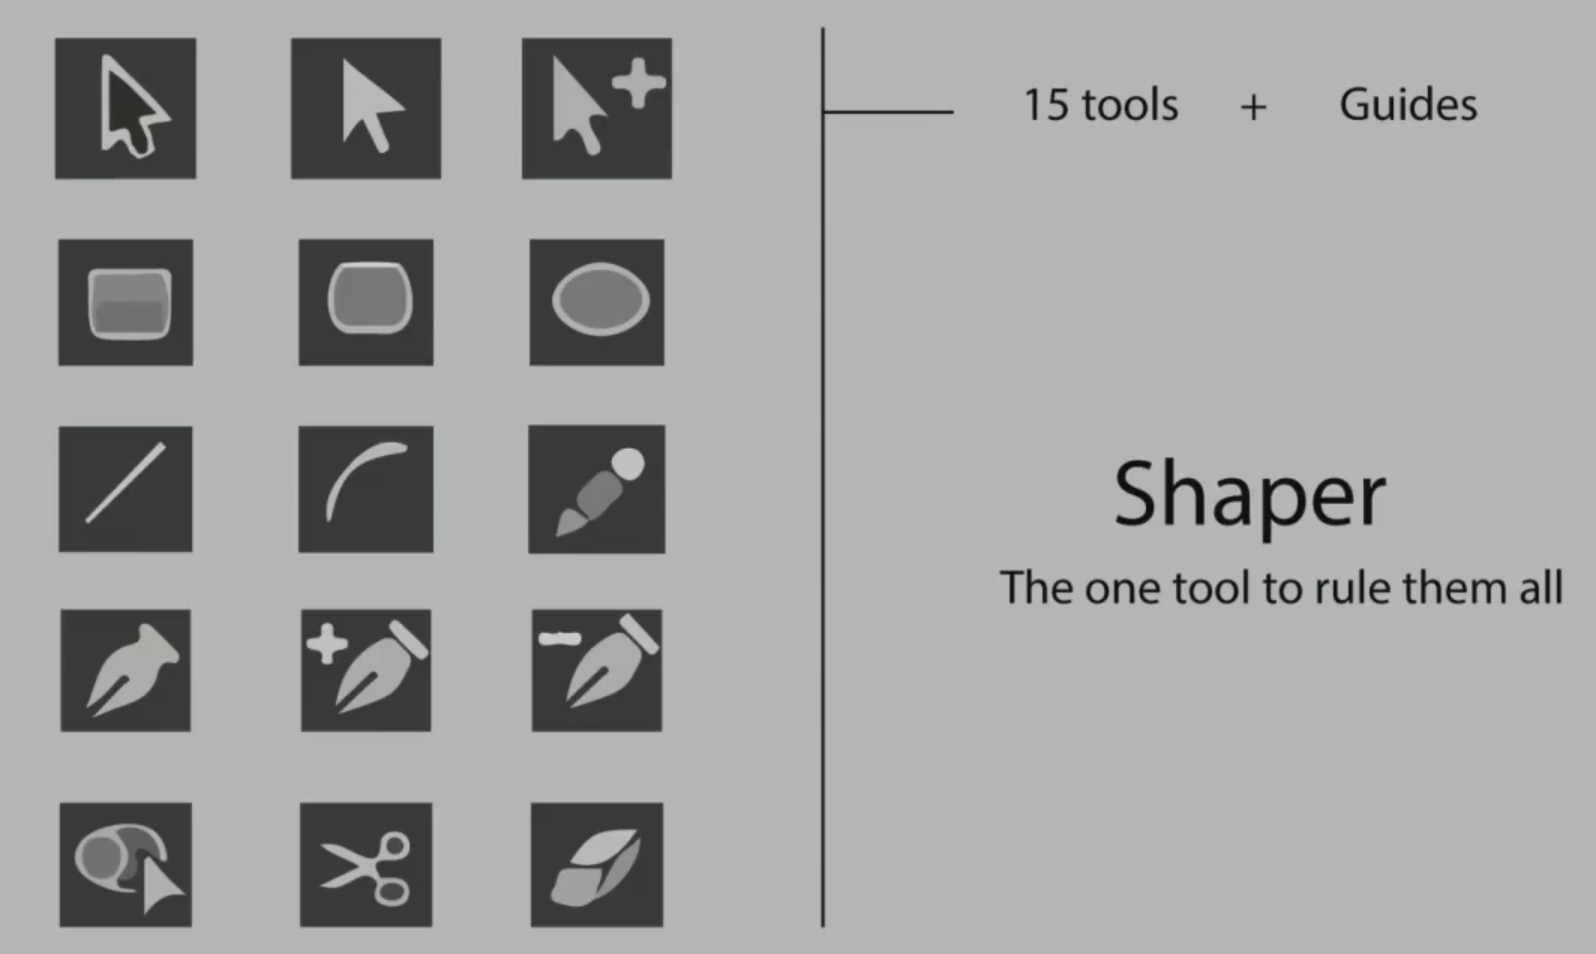 The goal of the Shaper developers is to replace up to 15 traditional tools and guides with one highly interactive tool.